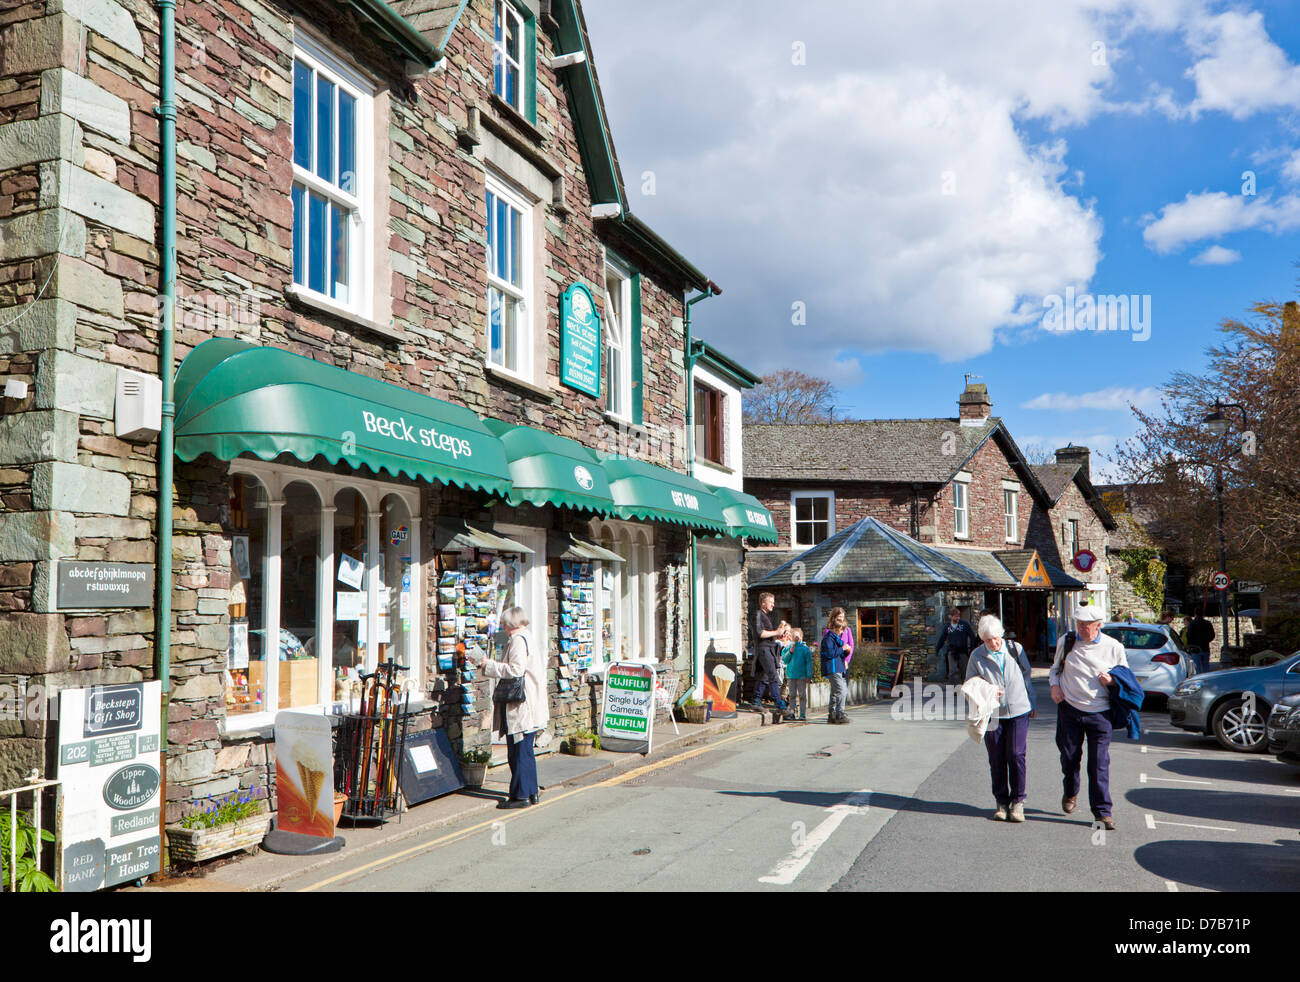 Tourists wandering around Grasmere Village with shops and cafes Cumbria Lake District England UK GB EU Europe - Stock Image